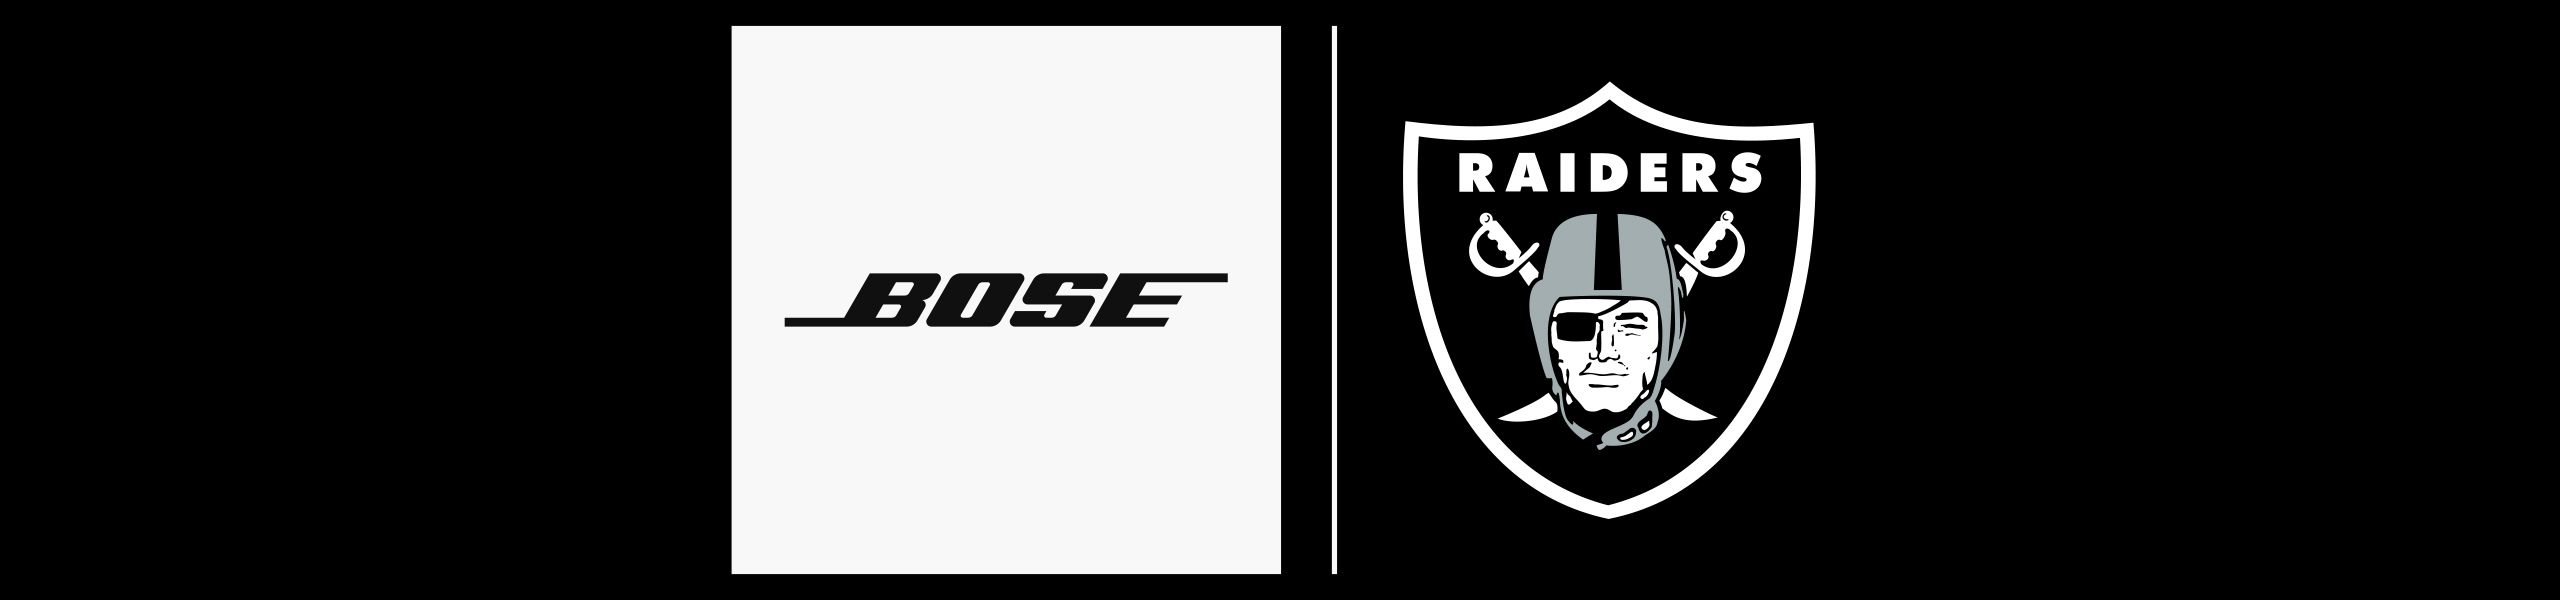 Thank you for entering the Raiders Holiday Sweepstakes presented by Bose.